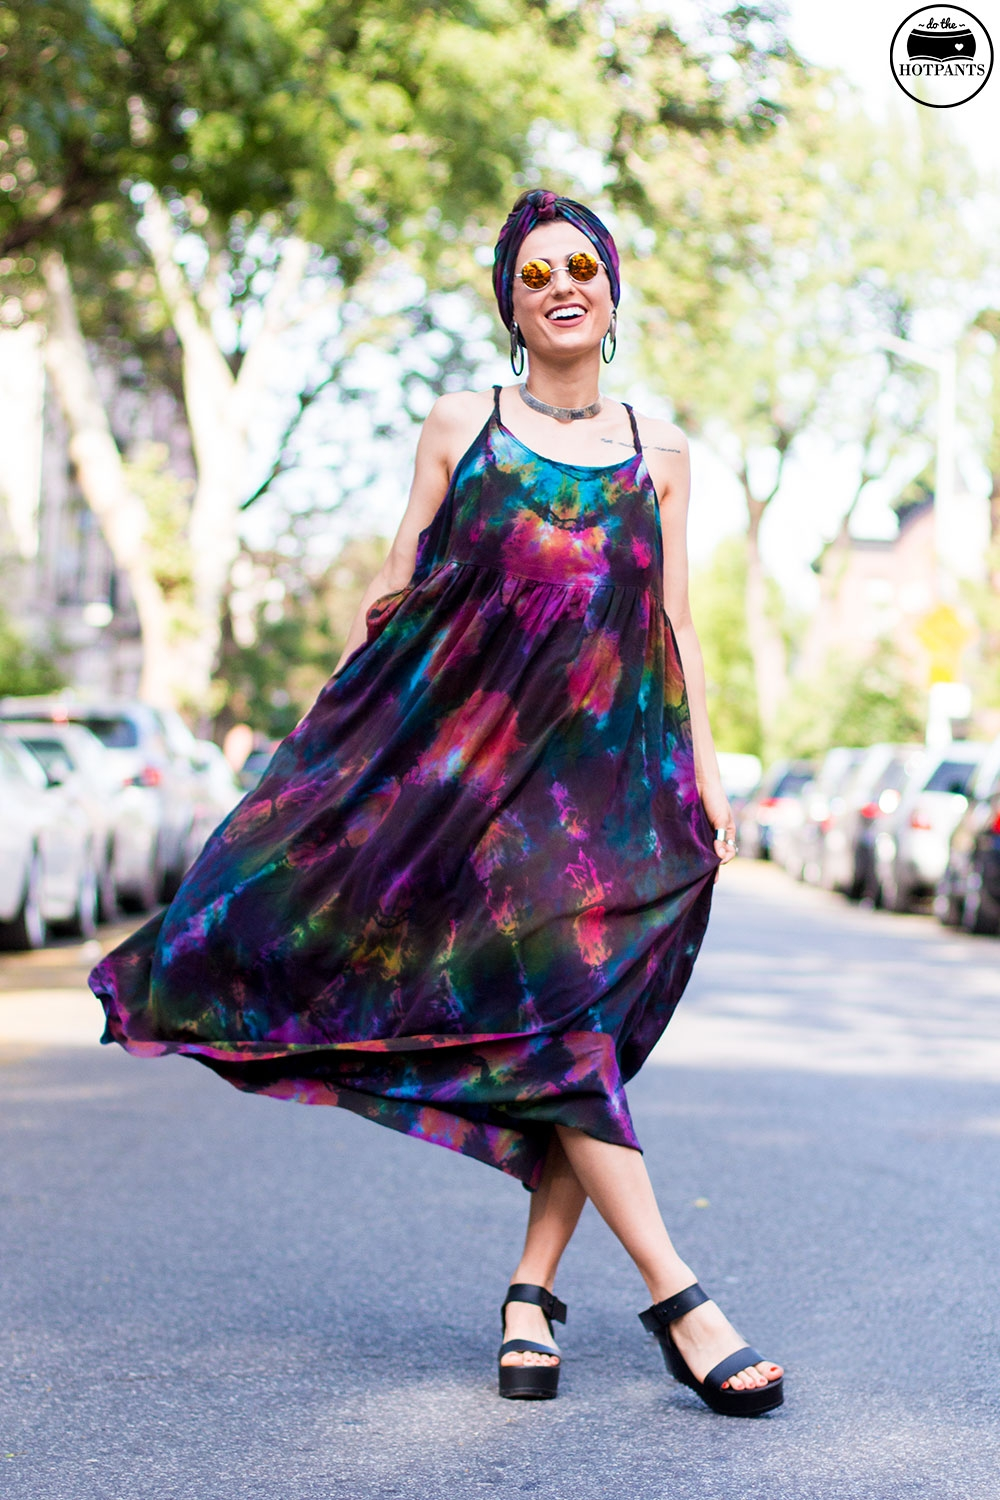 Do The Hotpants Dana Suchow Tie Dye Dress Maxi Flowy Summer Dress Tiedye Headwrap Turban Fashion IMG_9713